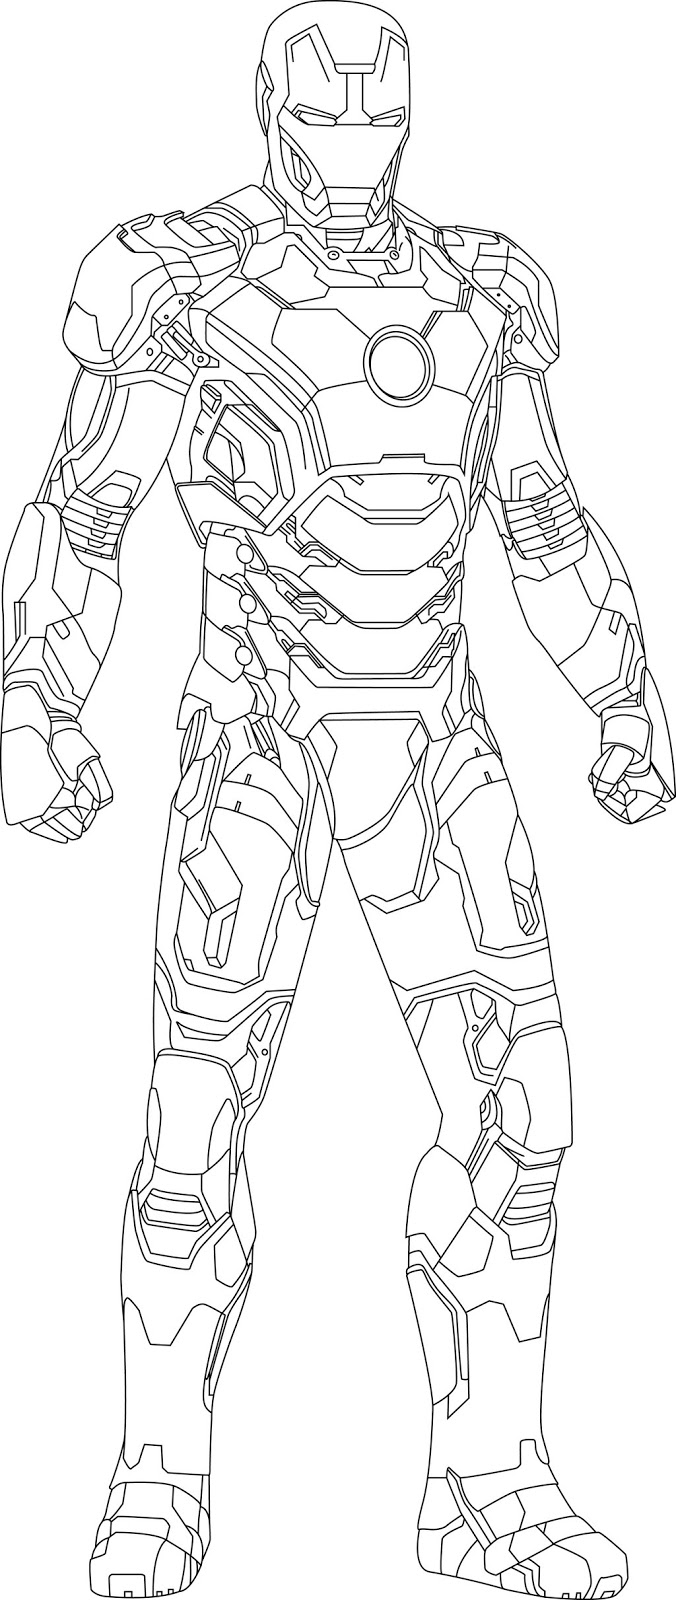 iron man coloring images free printable iron man coloring pages for kids best iron man coloring images